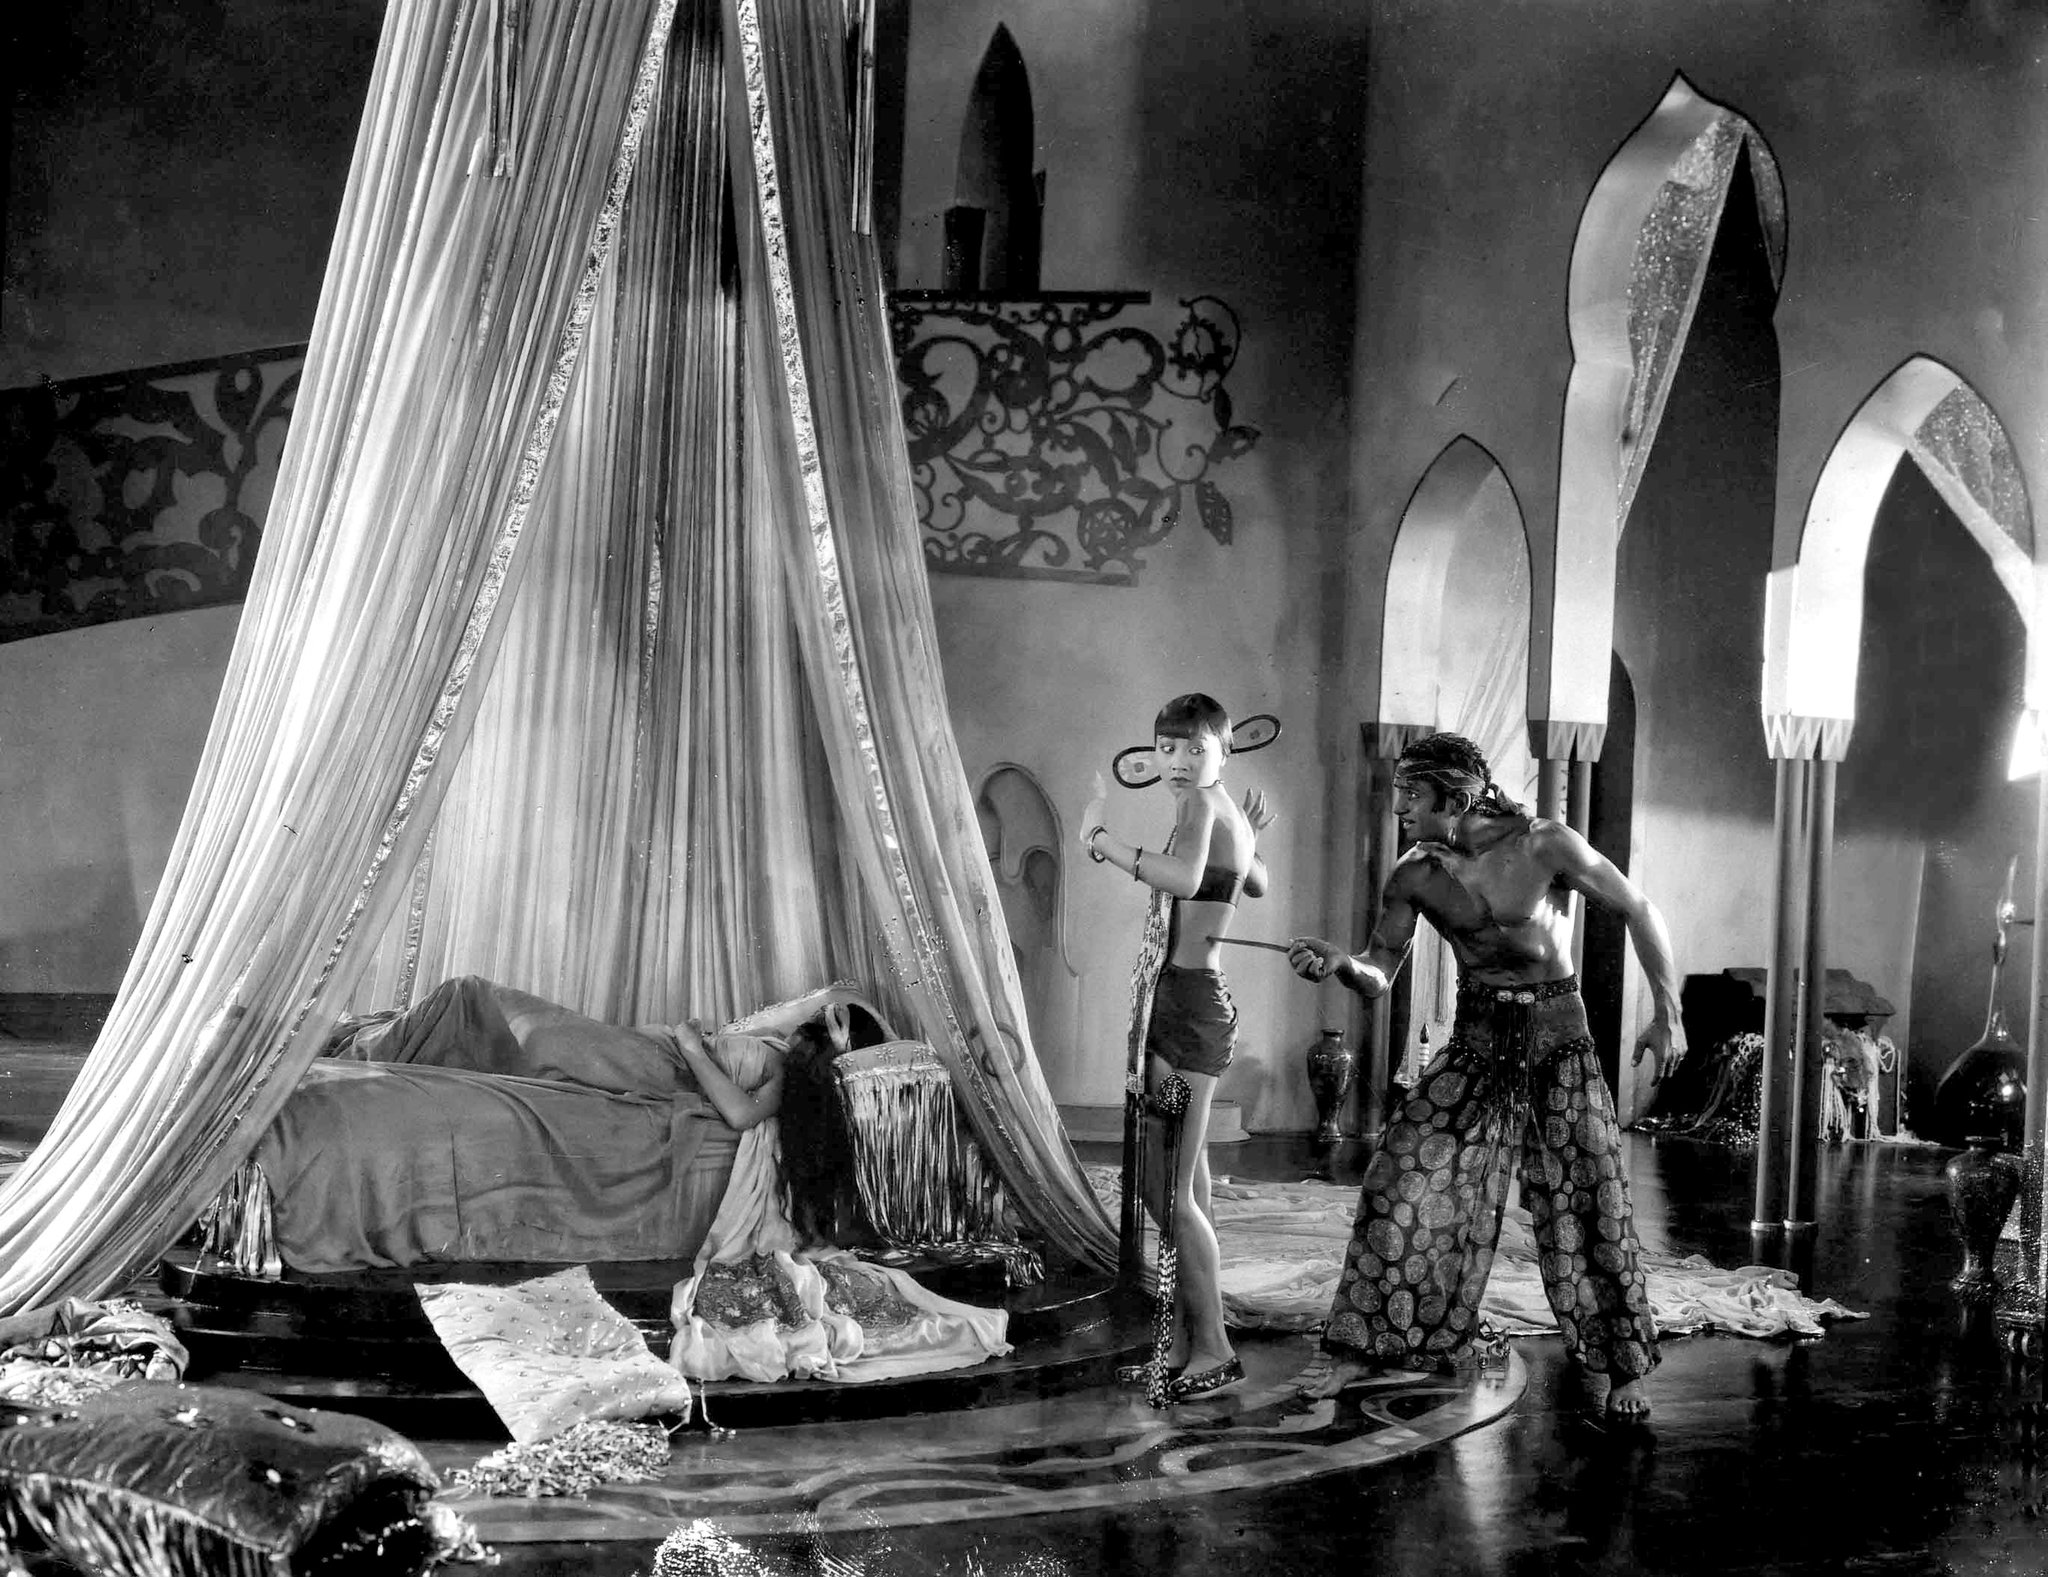 Douglas Fairbanks as Ahmed, the Thief of Bagdad threatening Anna May Wong as the Mongol Slave with Julanne Johnston as The Princess sleeping 1924 The Thief of Bagdad picture image